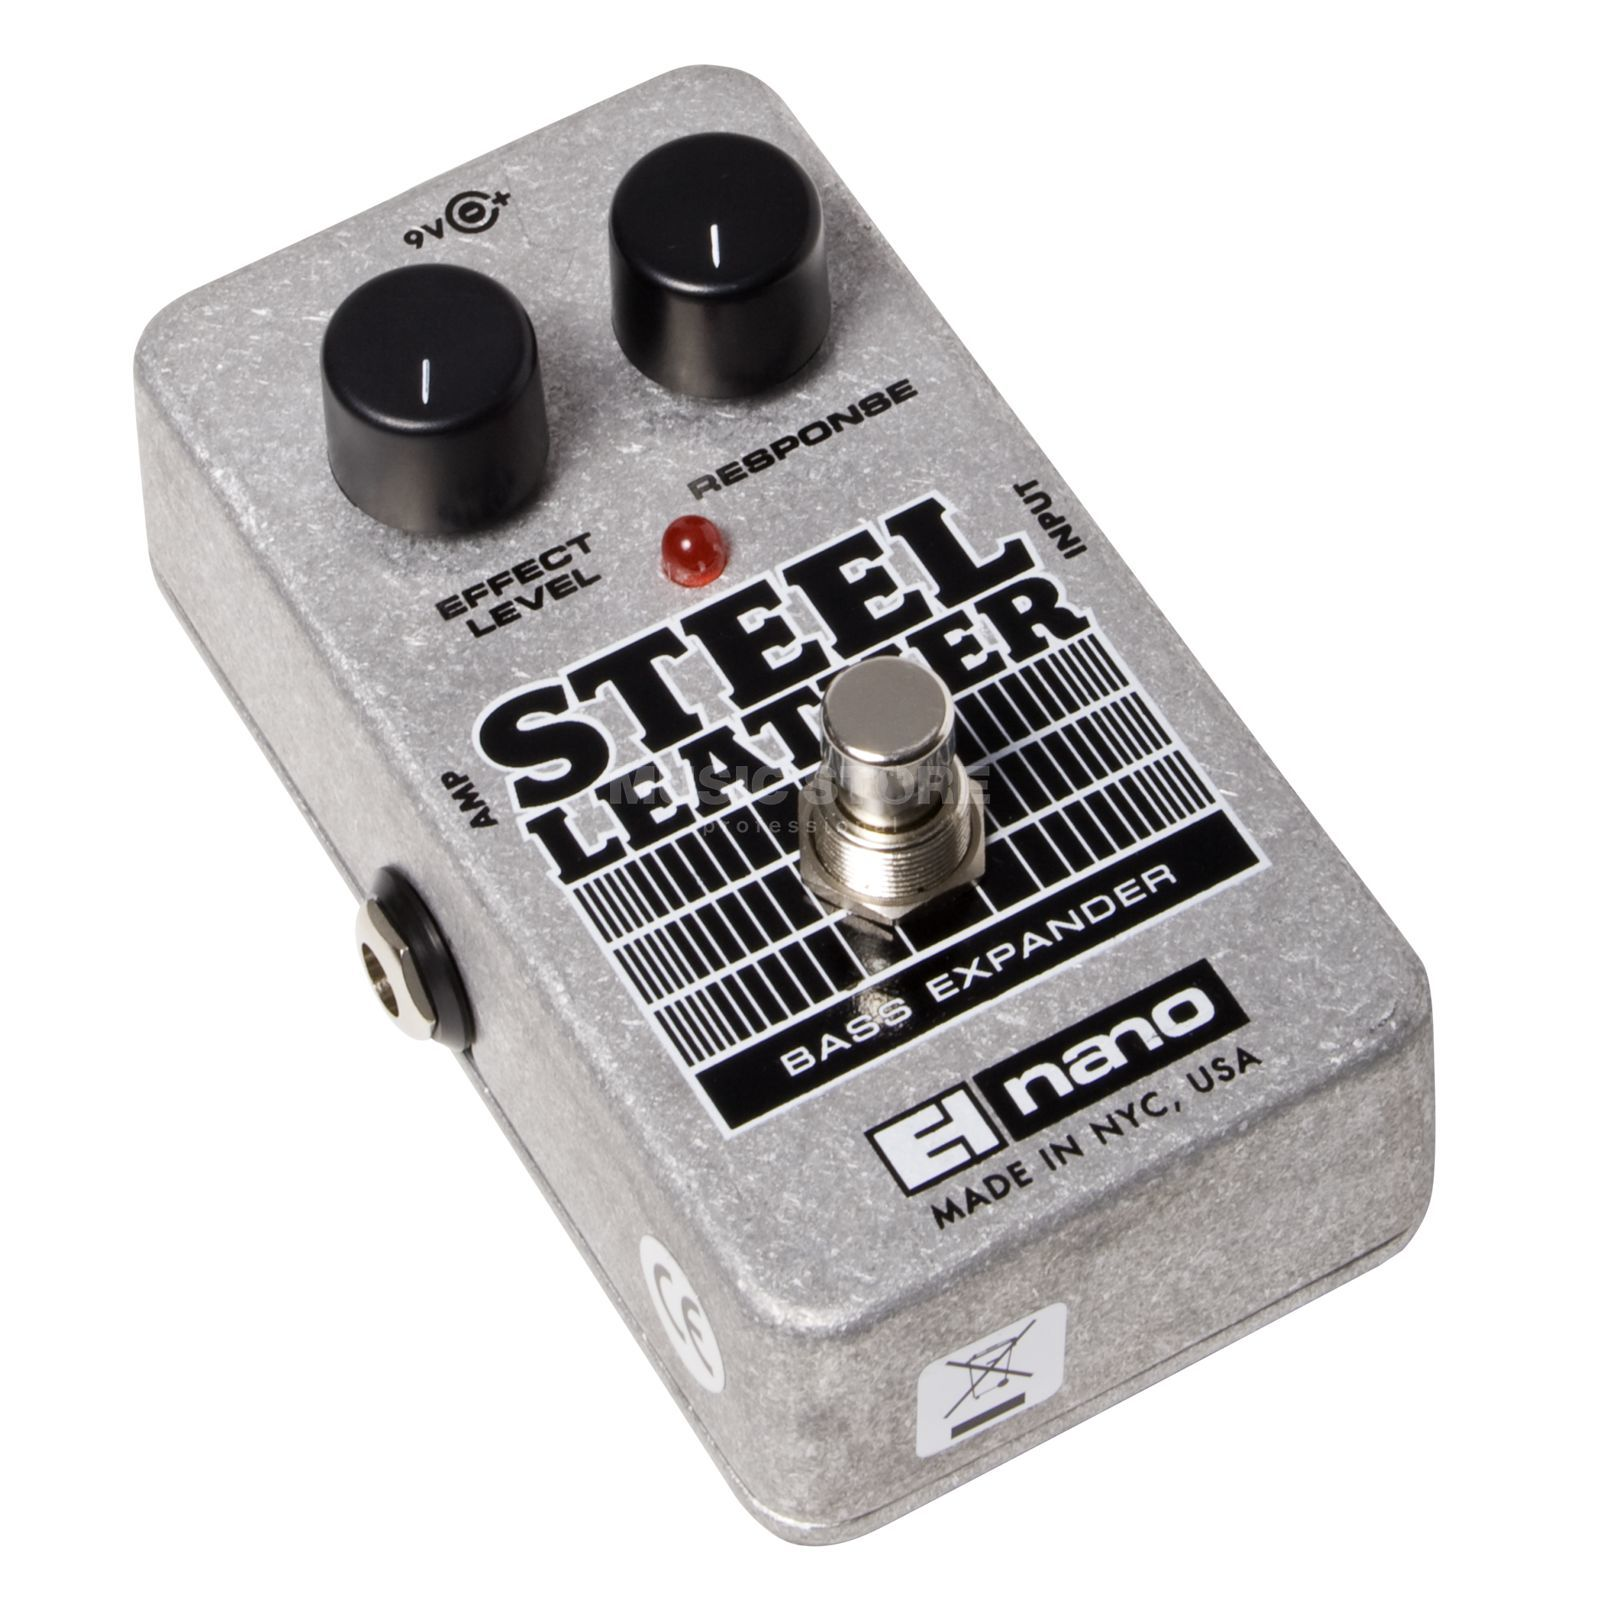 Electro Harmonix Steel Leather Bass Guitar Effe cts Pedal   Изображение товара